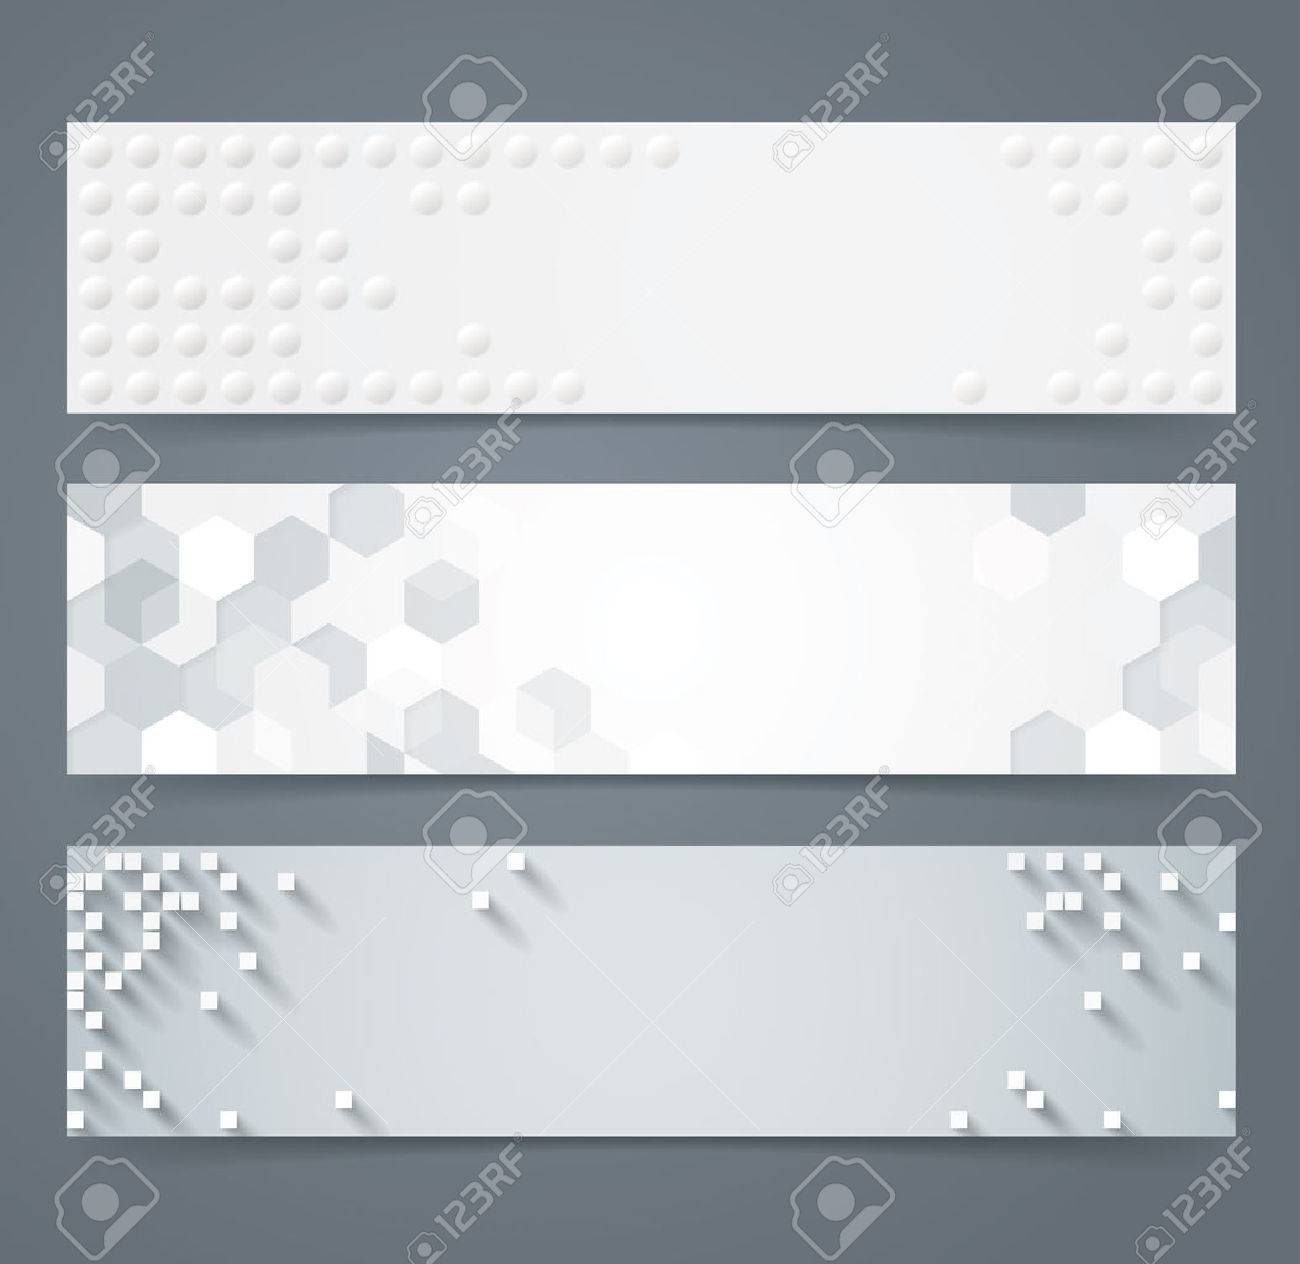 Collection of geometric background banner. - 40921041